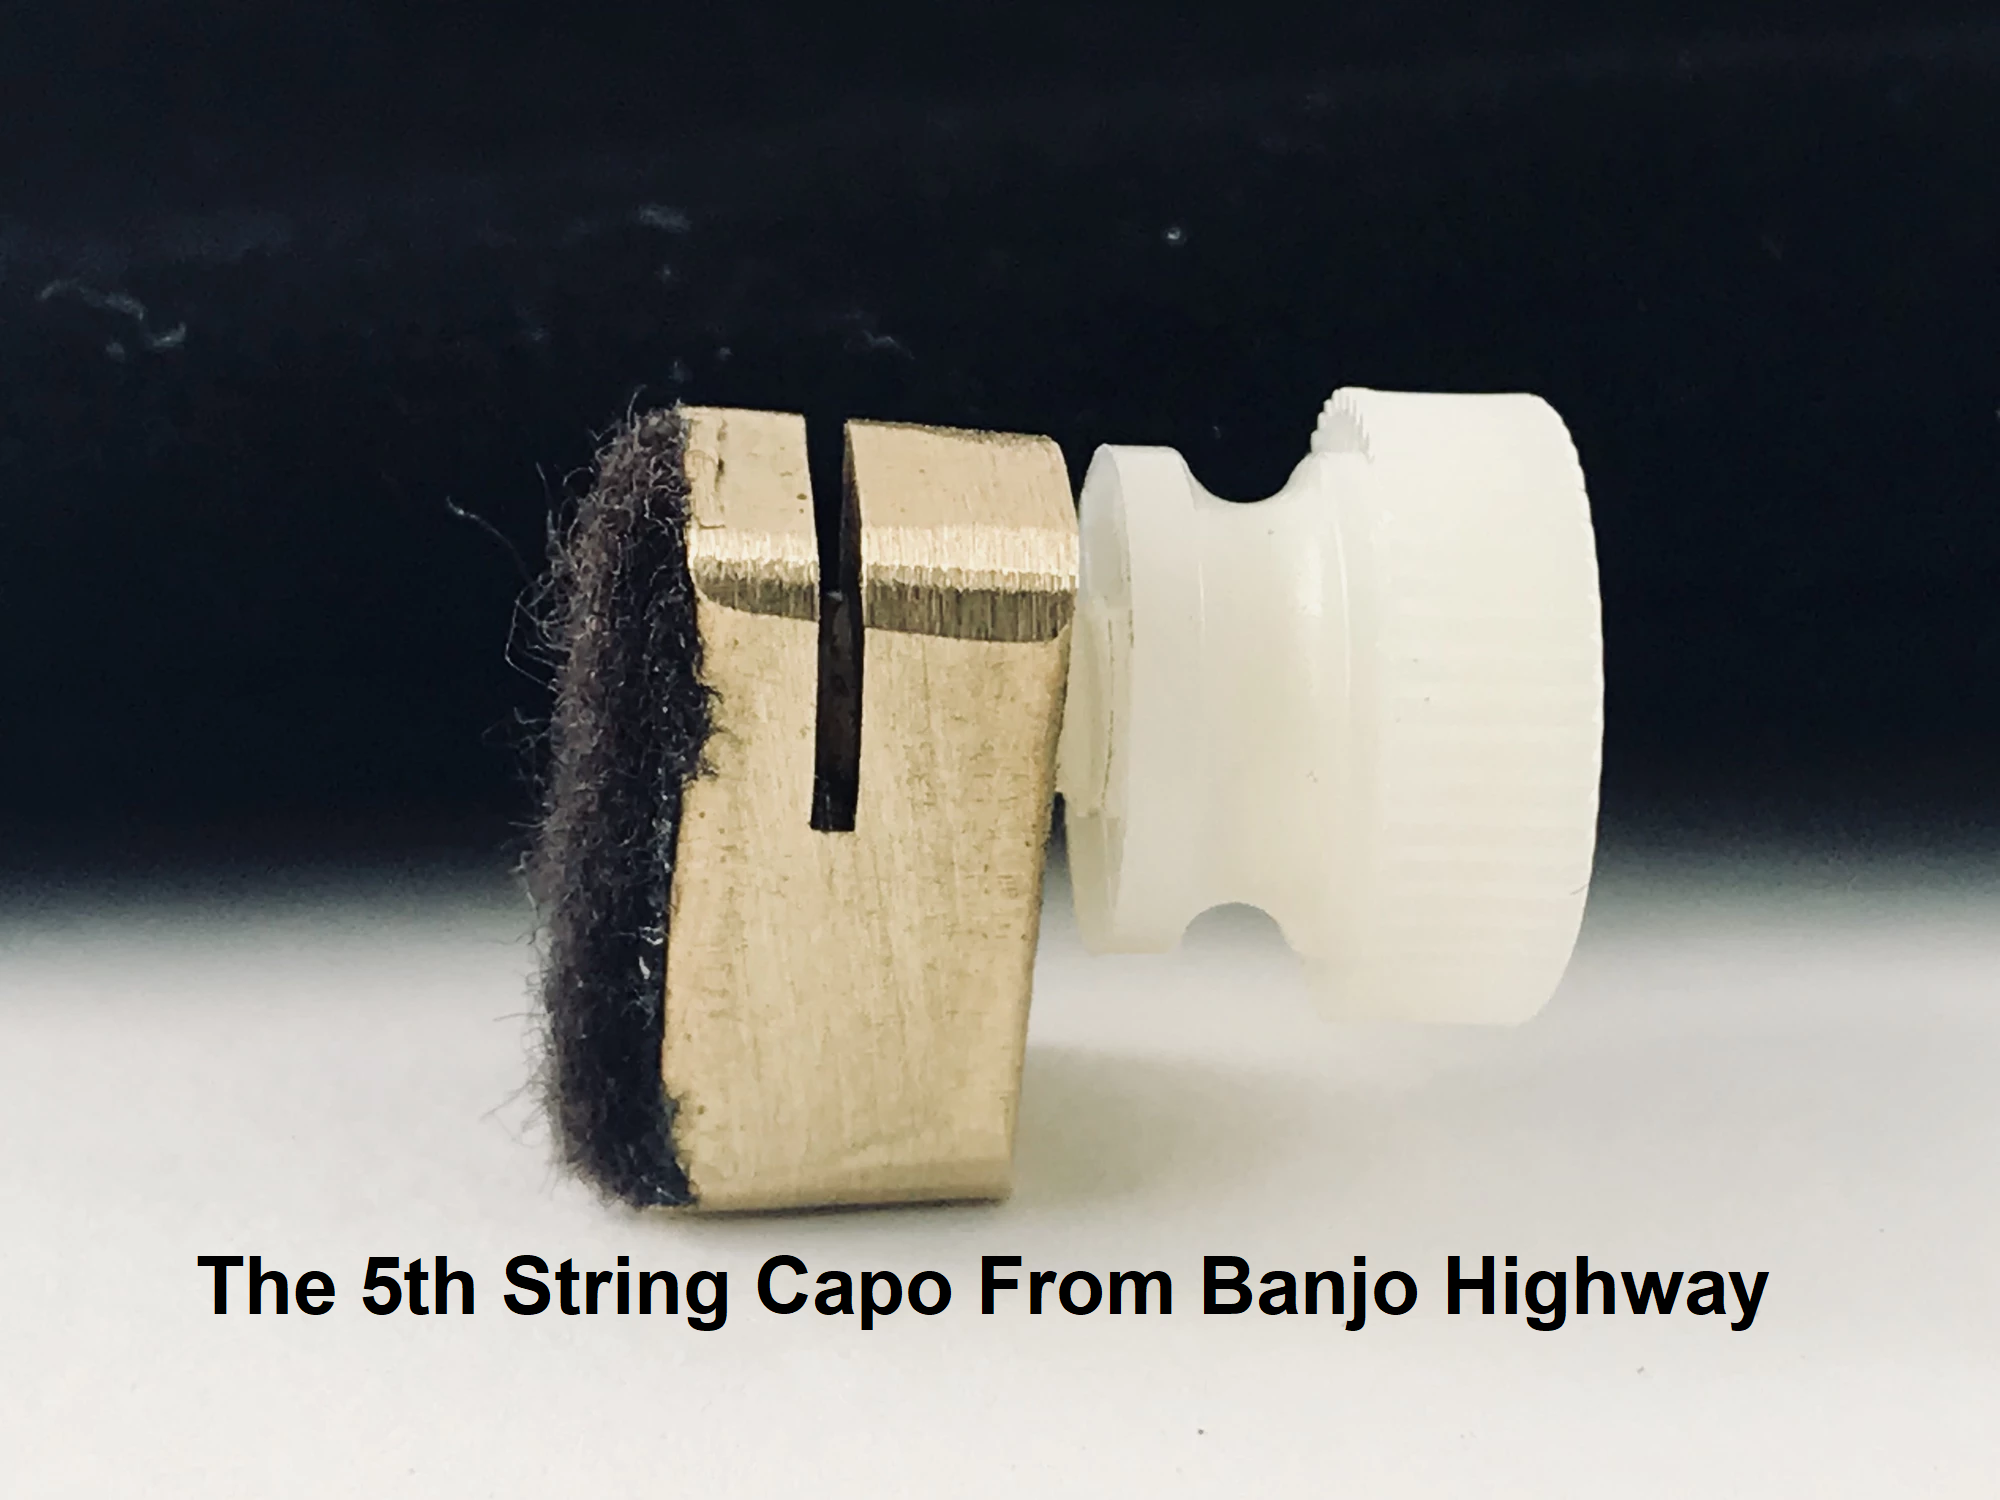 The 5th String Capo From Banjo Highway